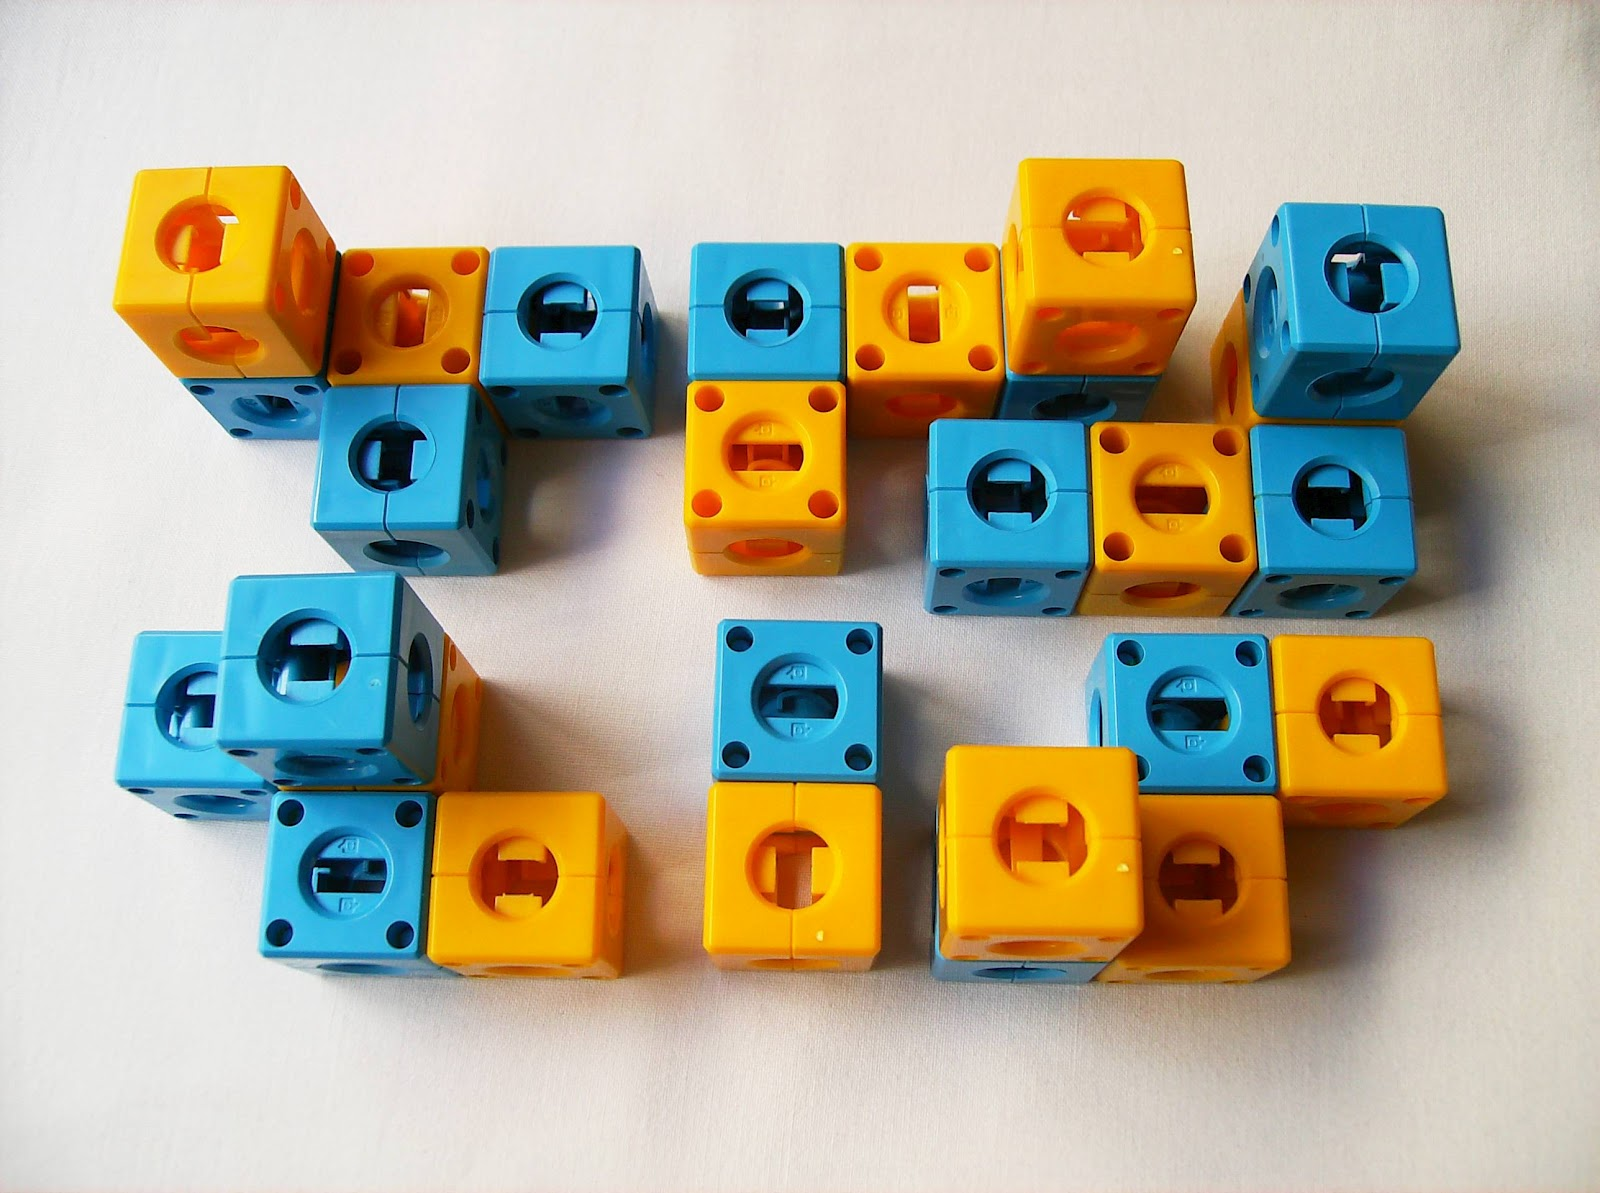 Gabriel Fernandes Puzzle Collection Dbox Circuit Mazeelectric Current Logic Game Brain Teaser Amazing Toys Is Shown In One Of The Photos Are Other Interesting Choices A 3x3 Cube Dissection That You Can Try As Well Below Pictures Few